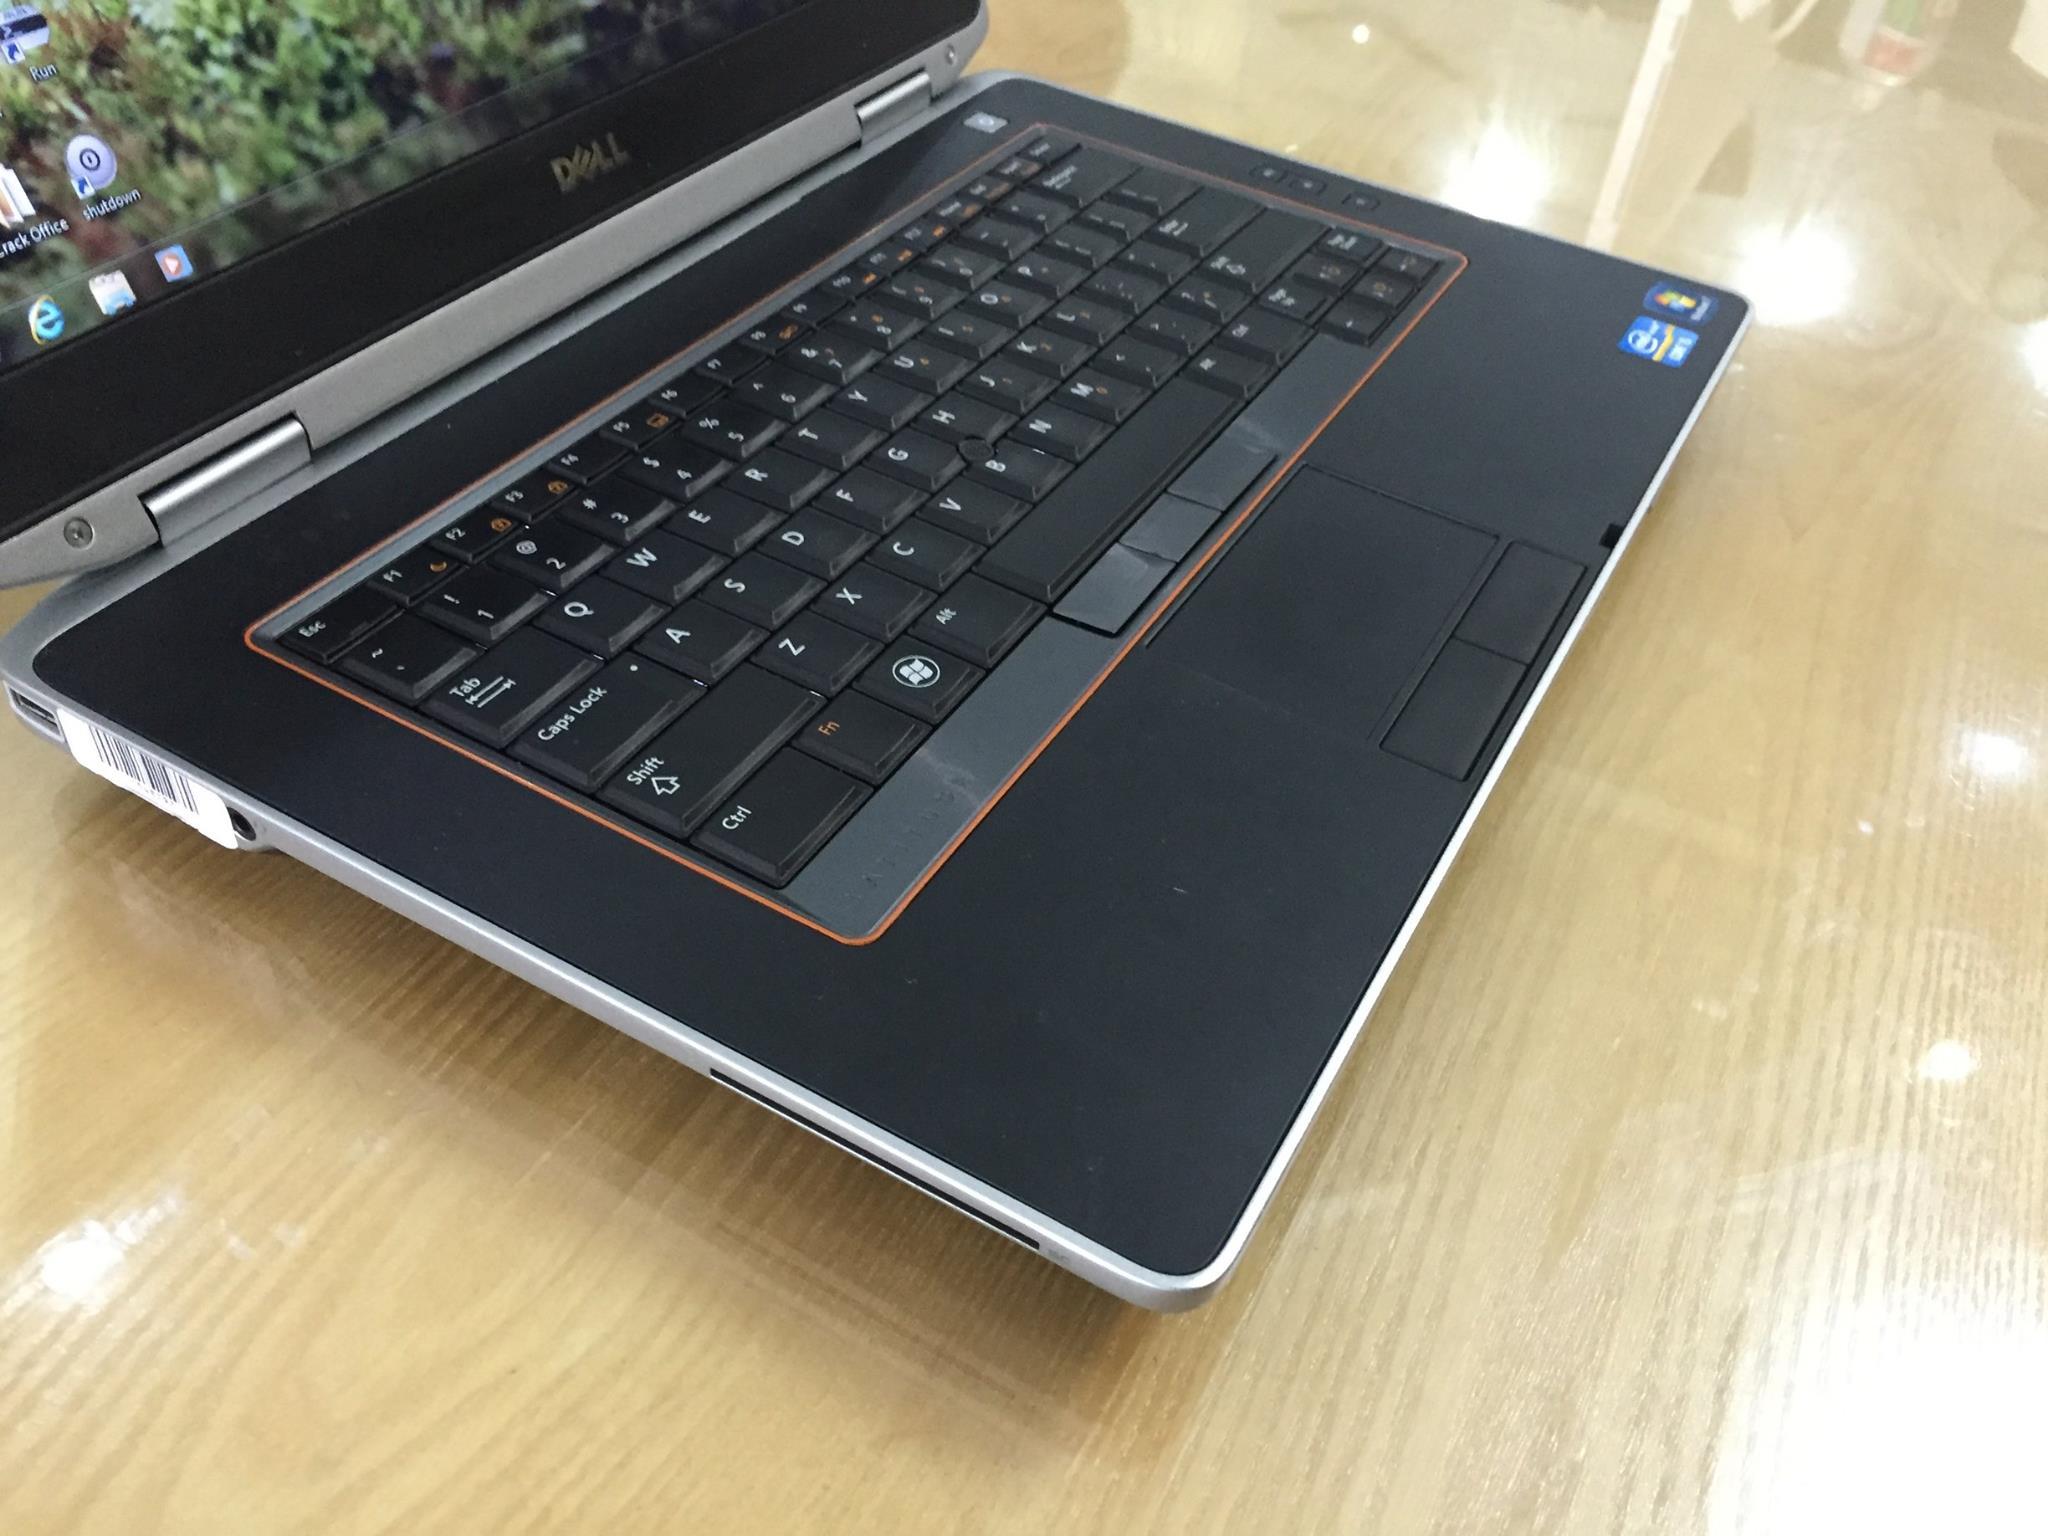 Laptop Dell Latitide E6420 VGA roi -5.jpg